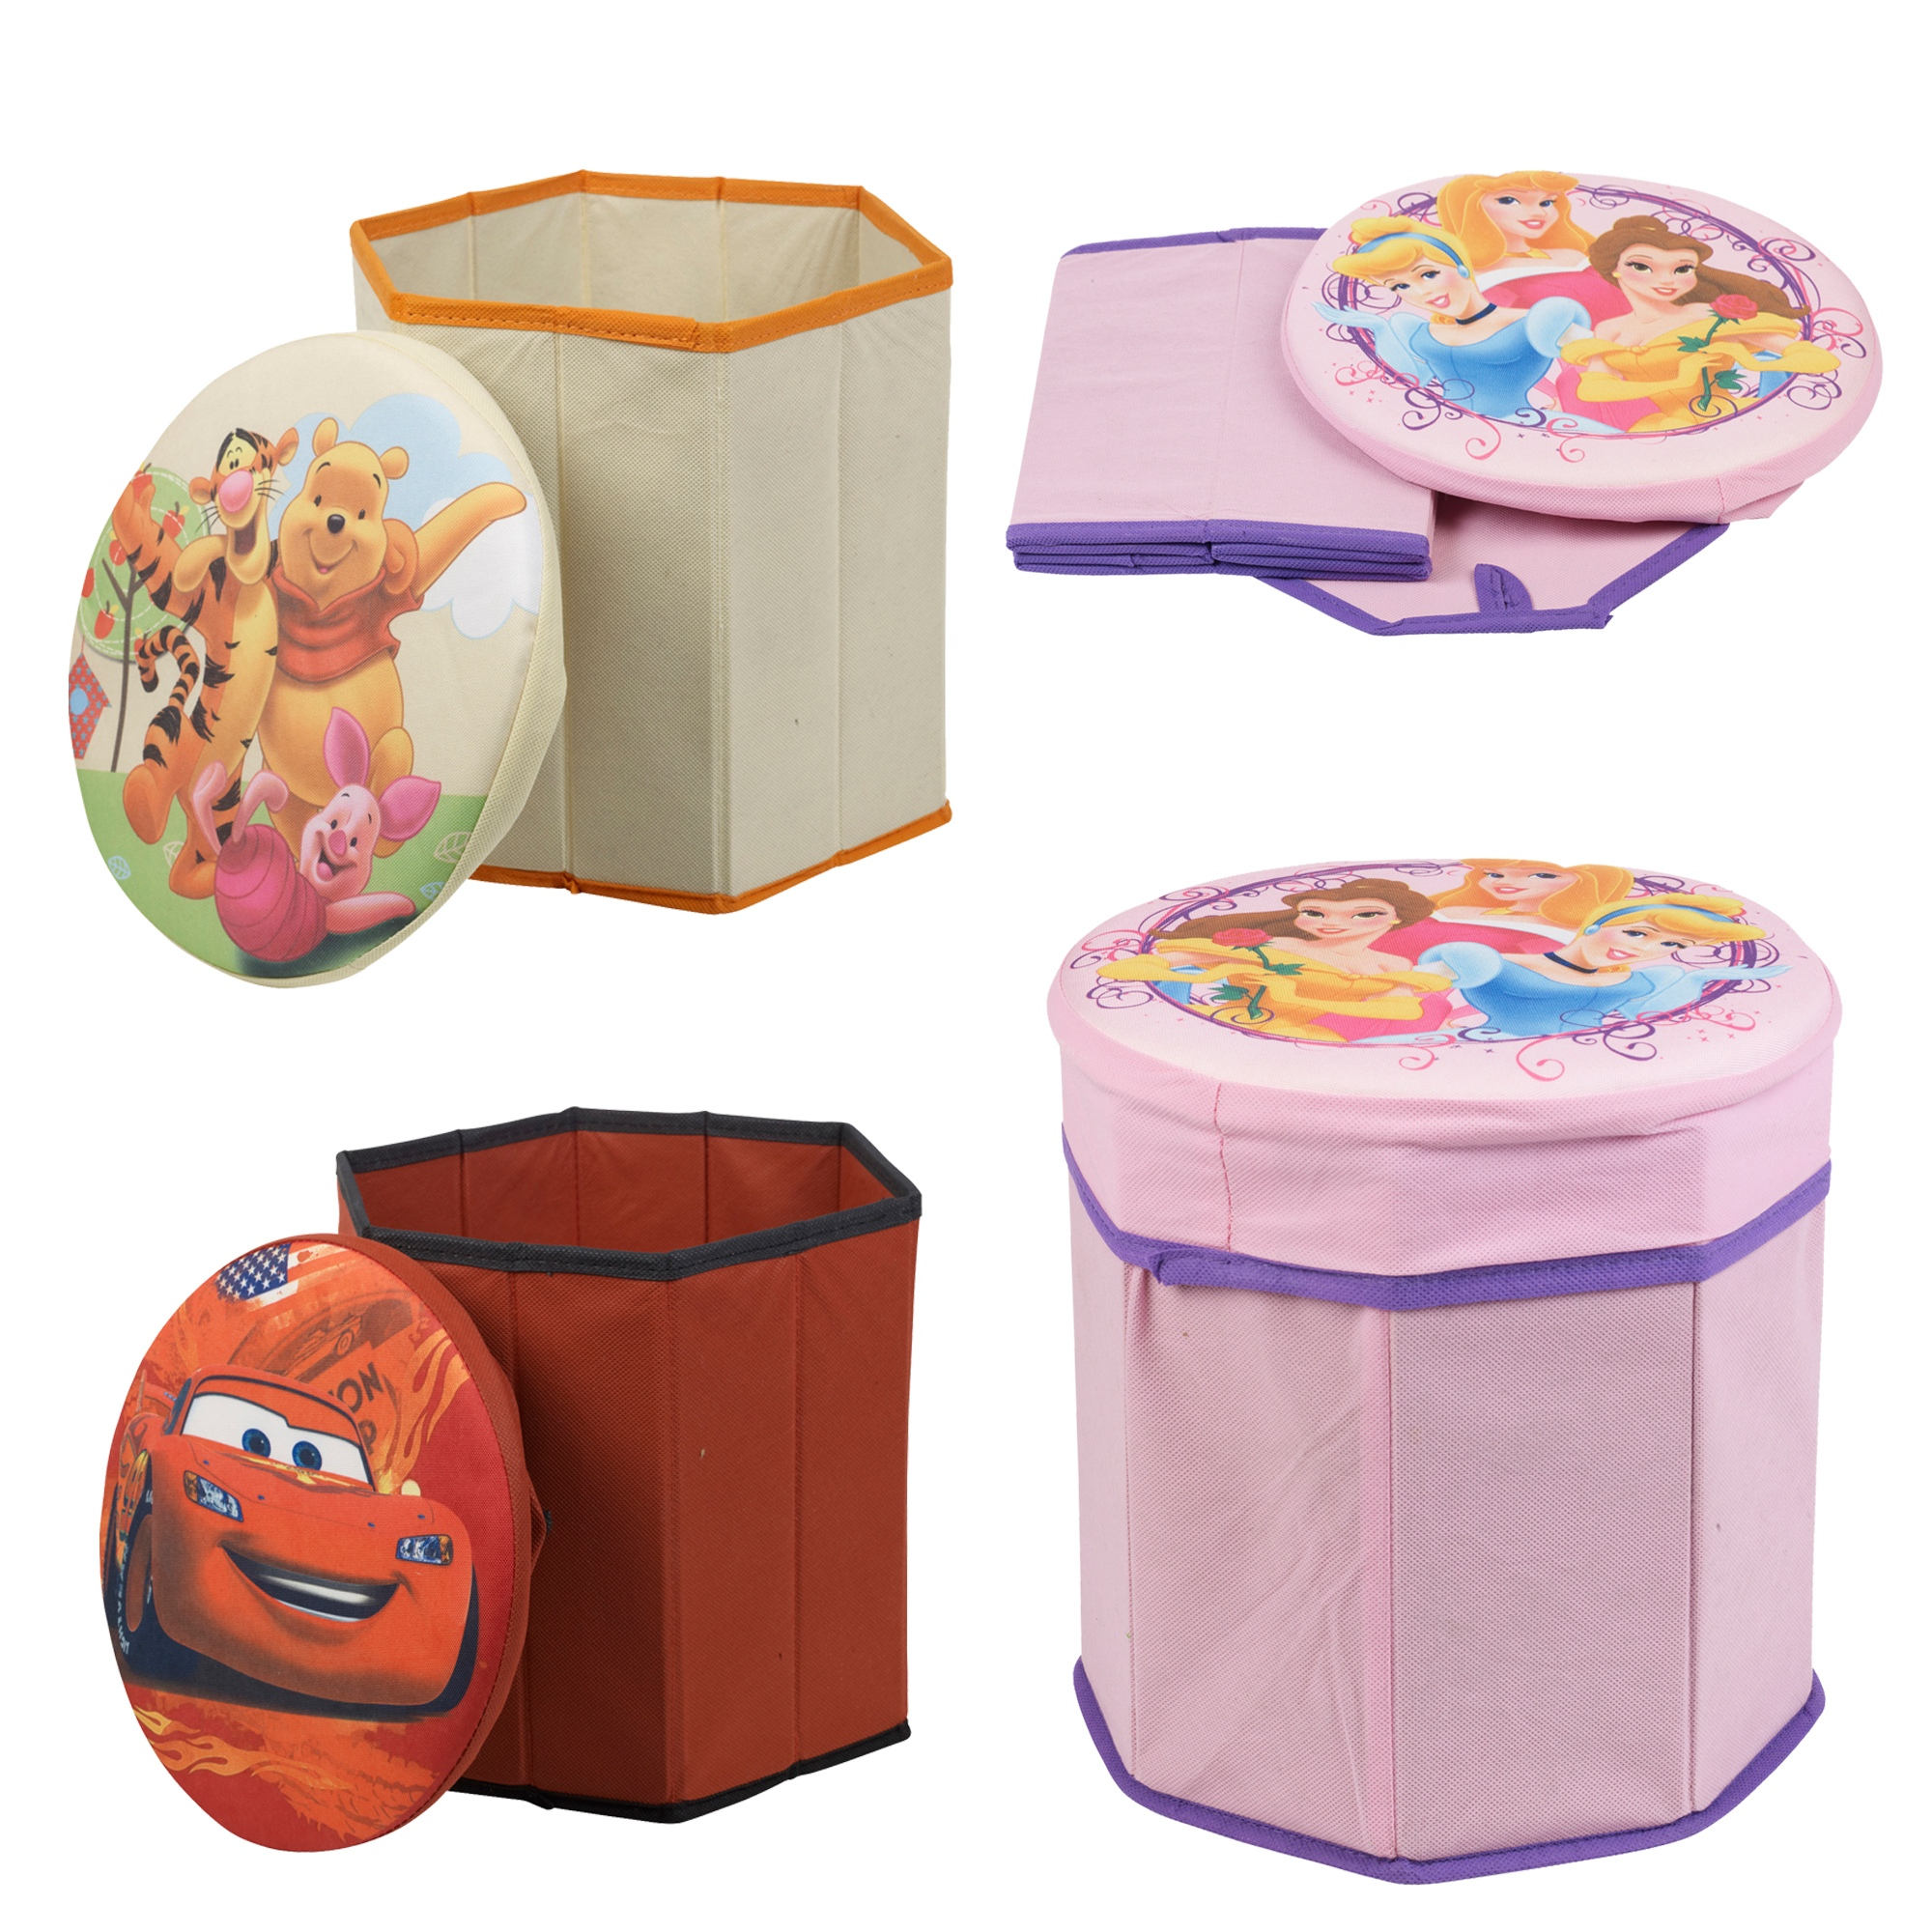 Item specifics. Disney Characters Storage Foot Stool Children Pouffe Bedroom Chair